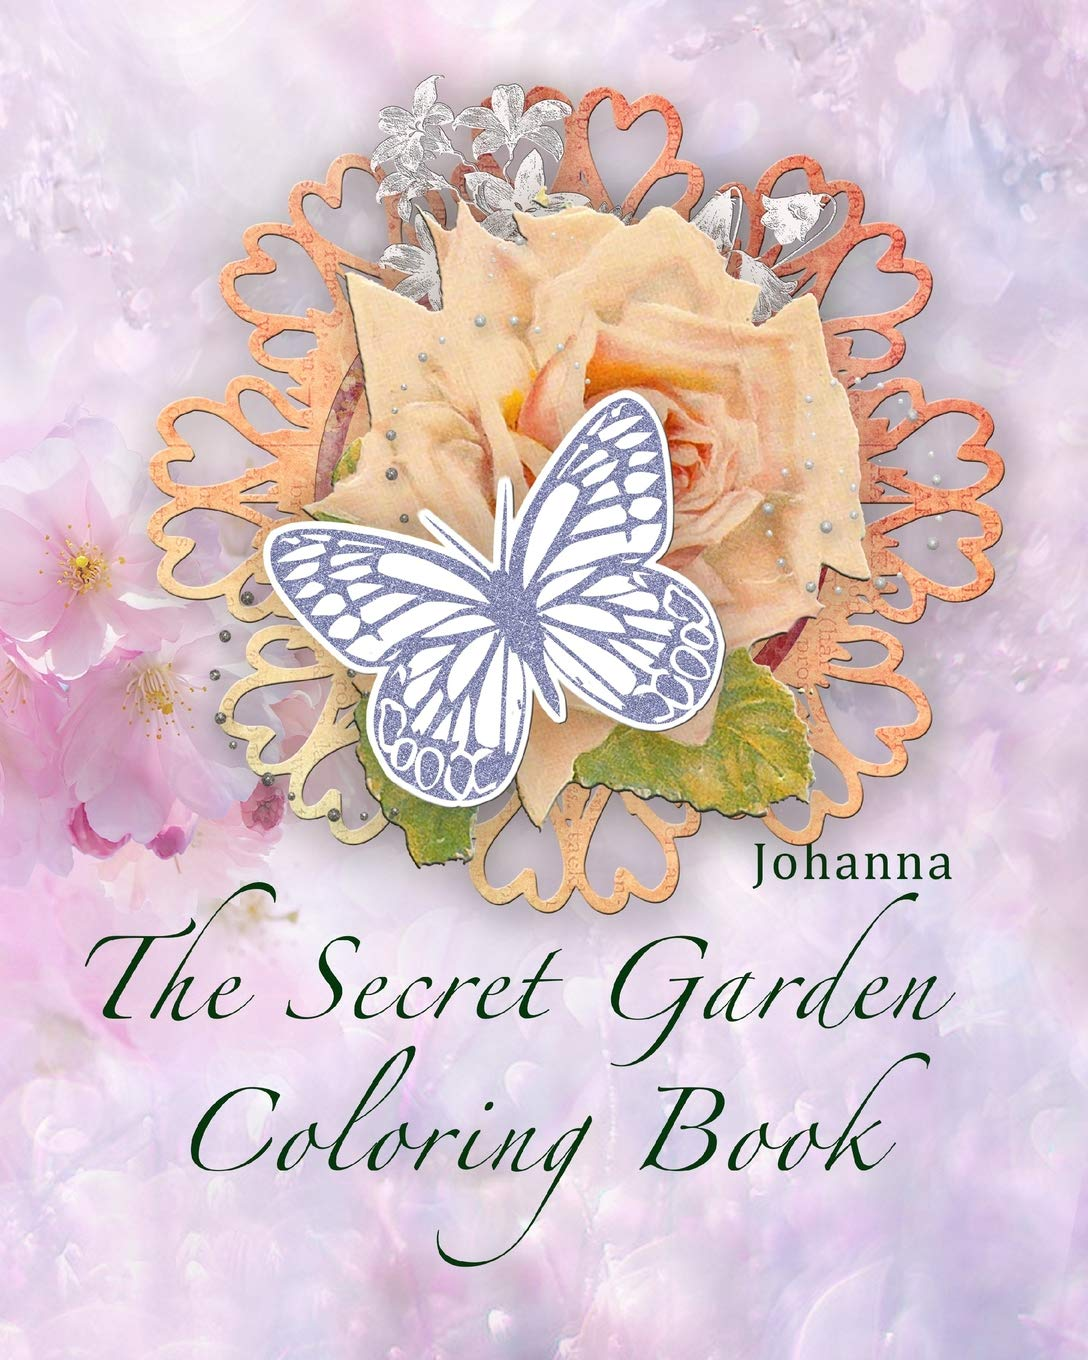 Amazon.com: The Secret Garden Coloring Book (9781731087027): Johanna ...